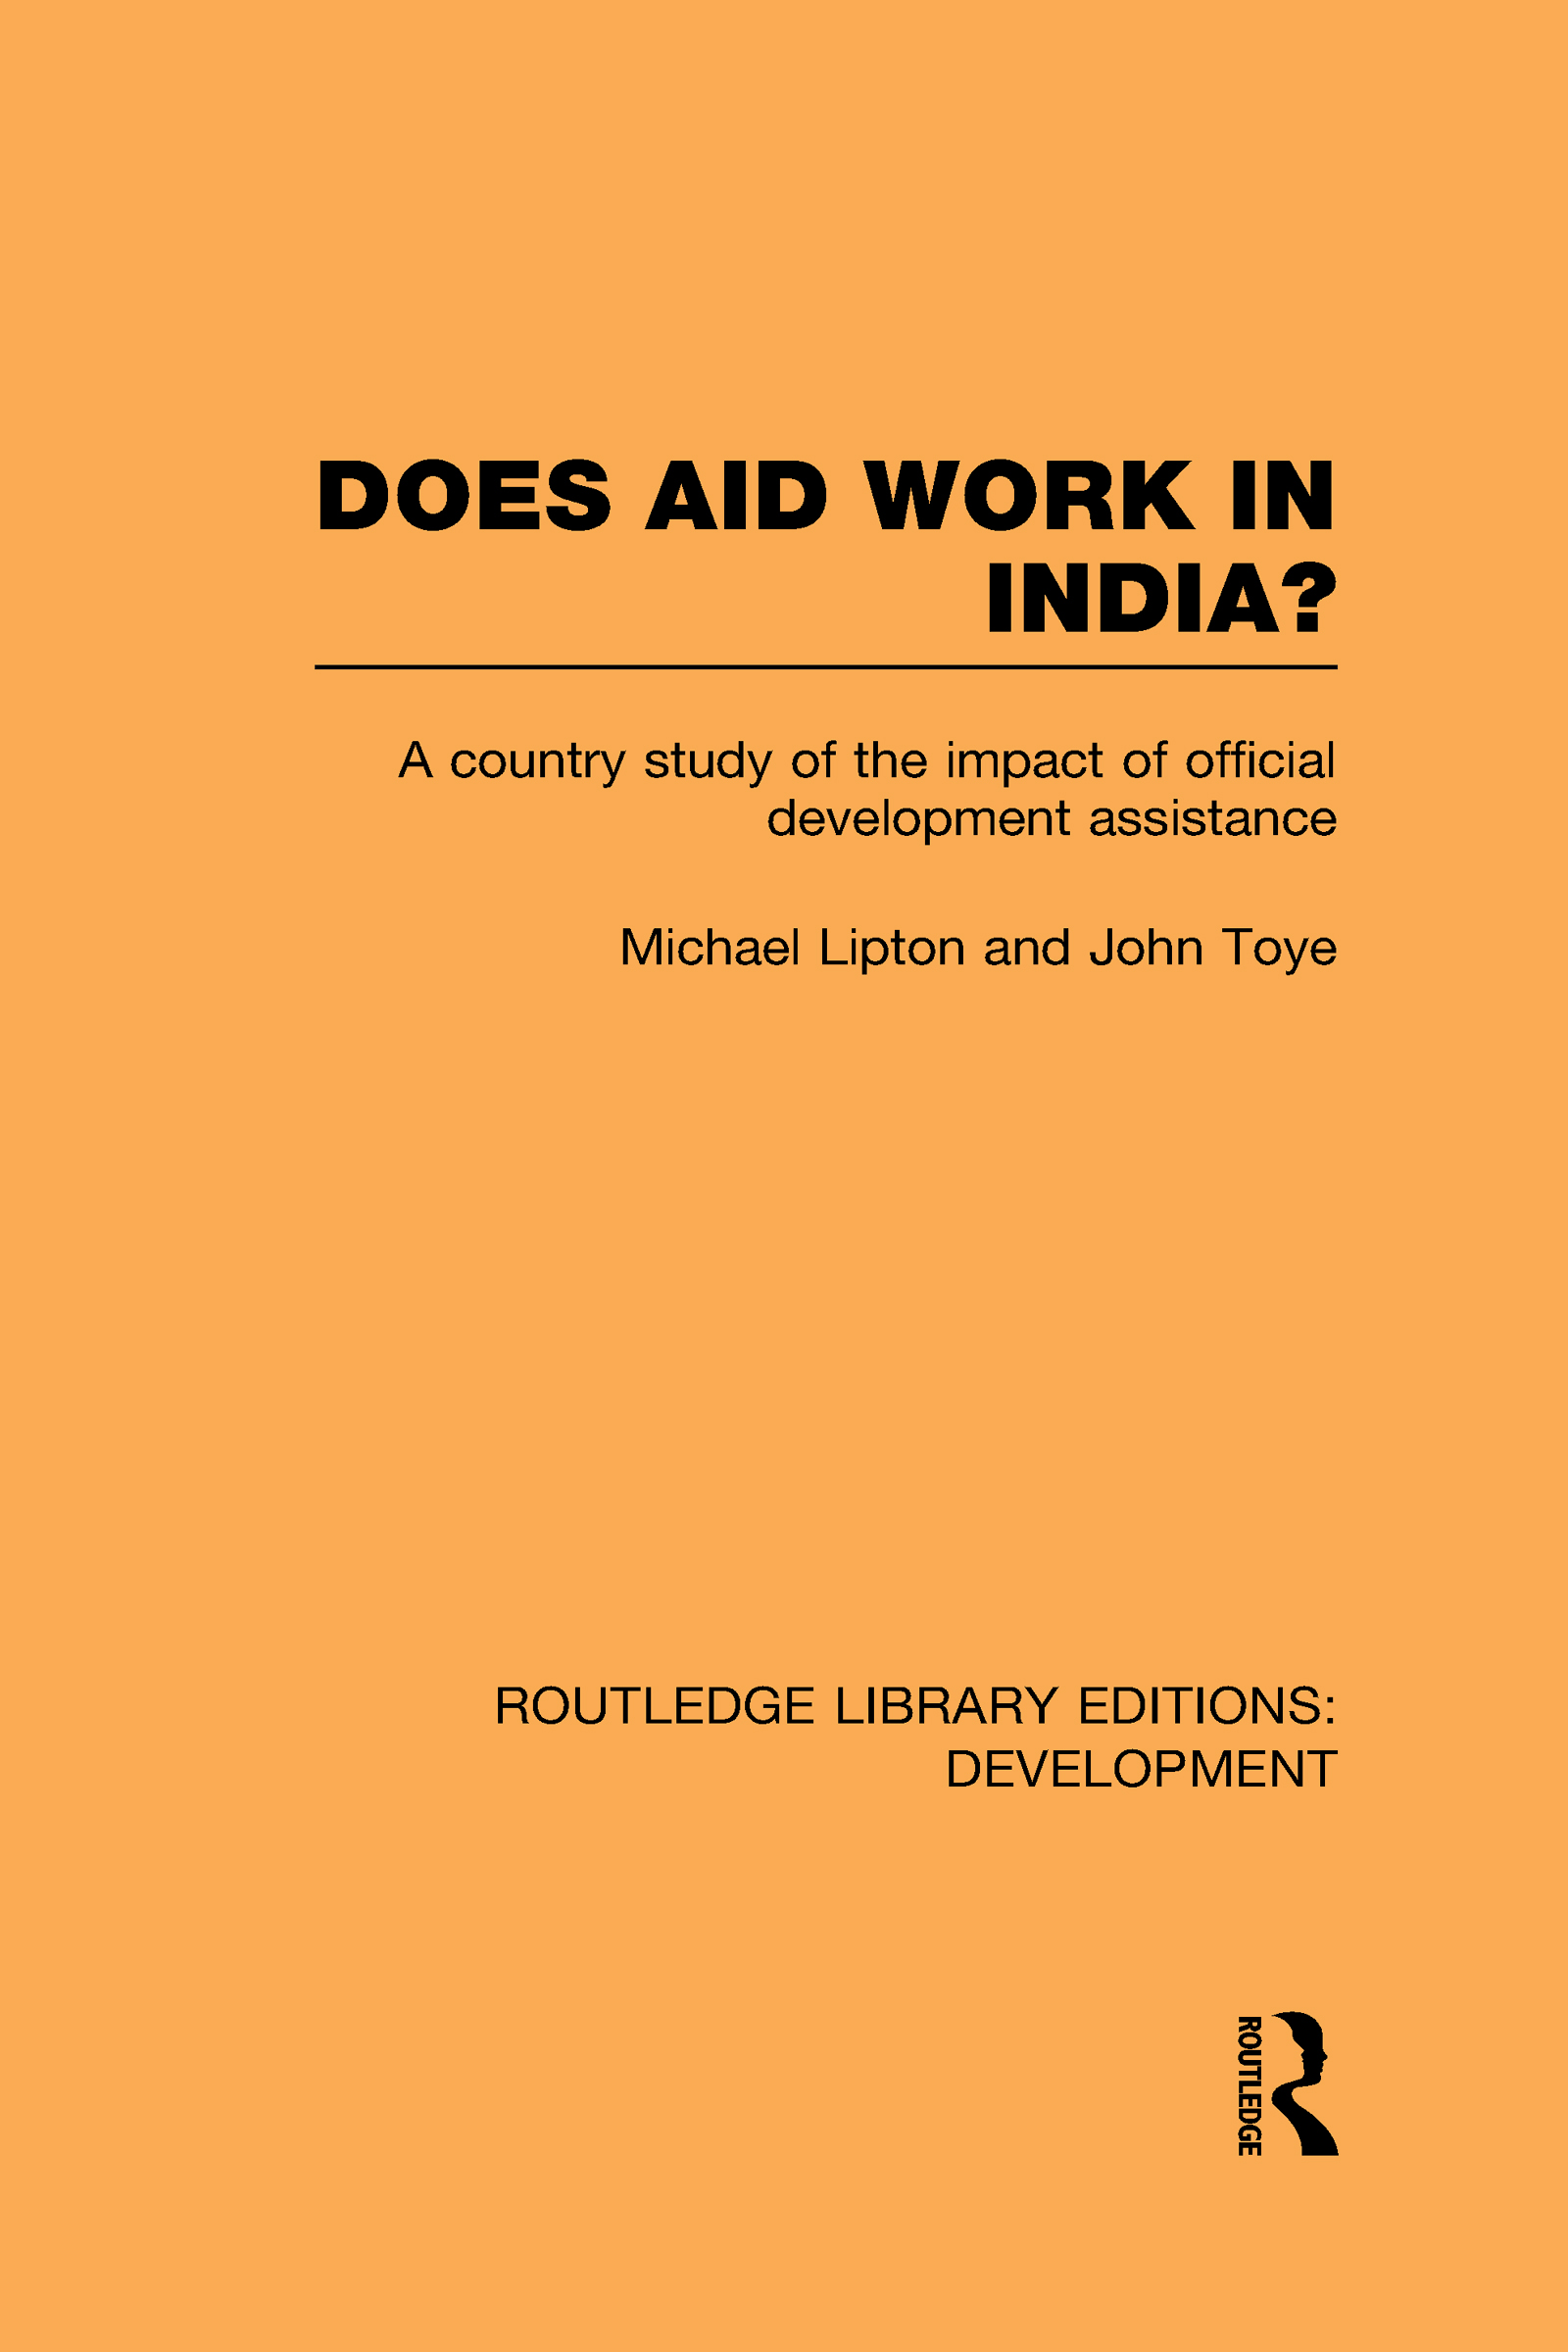 India's Aid Resources in Macroeconomic Context